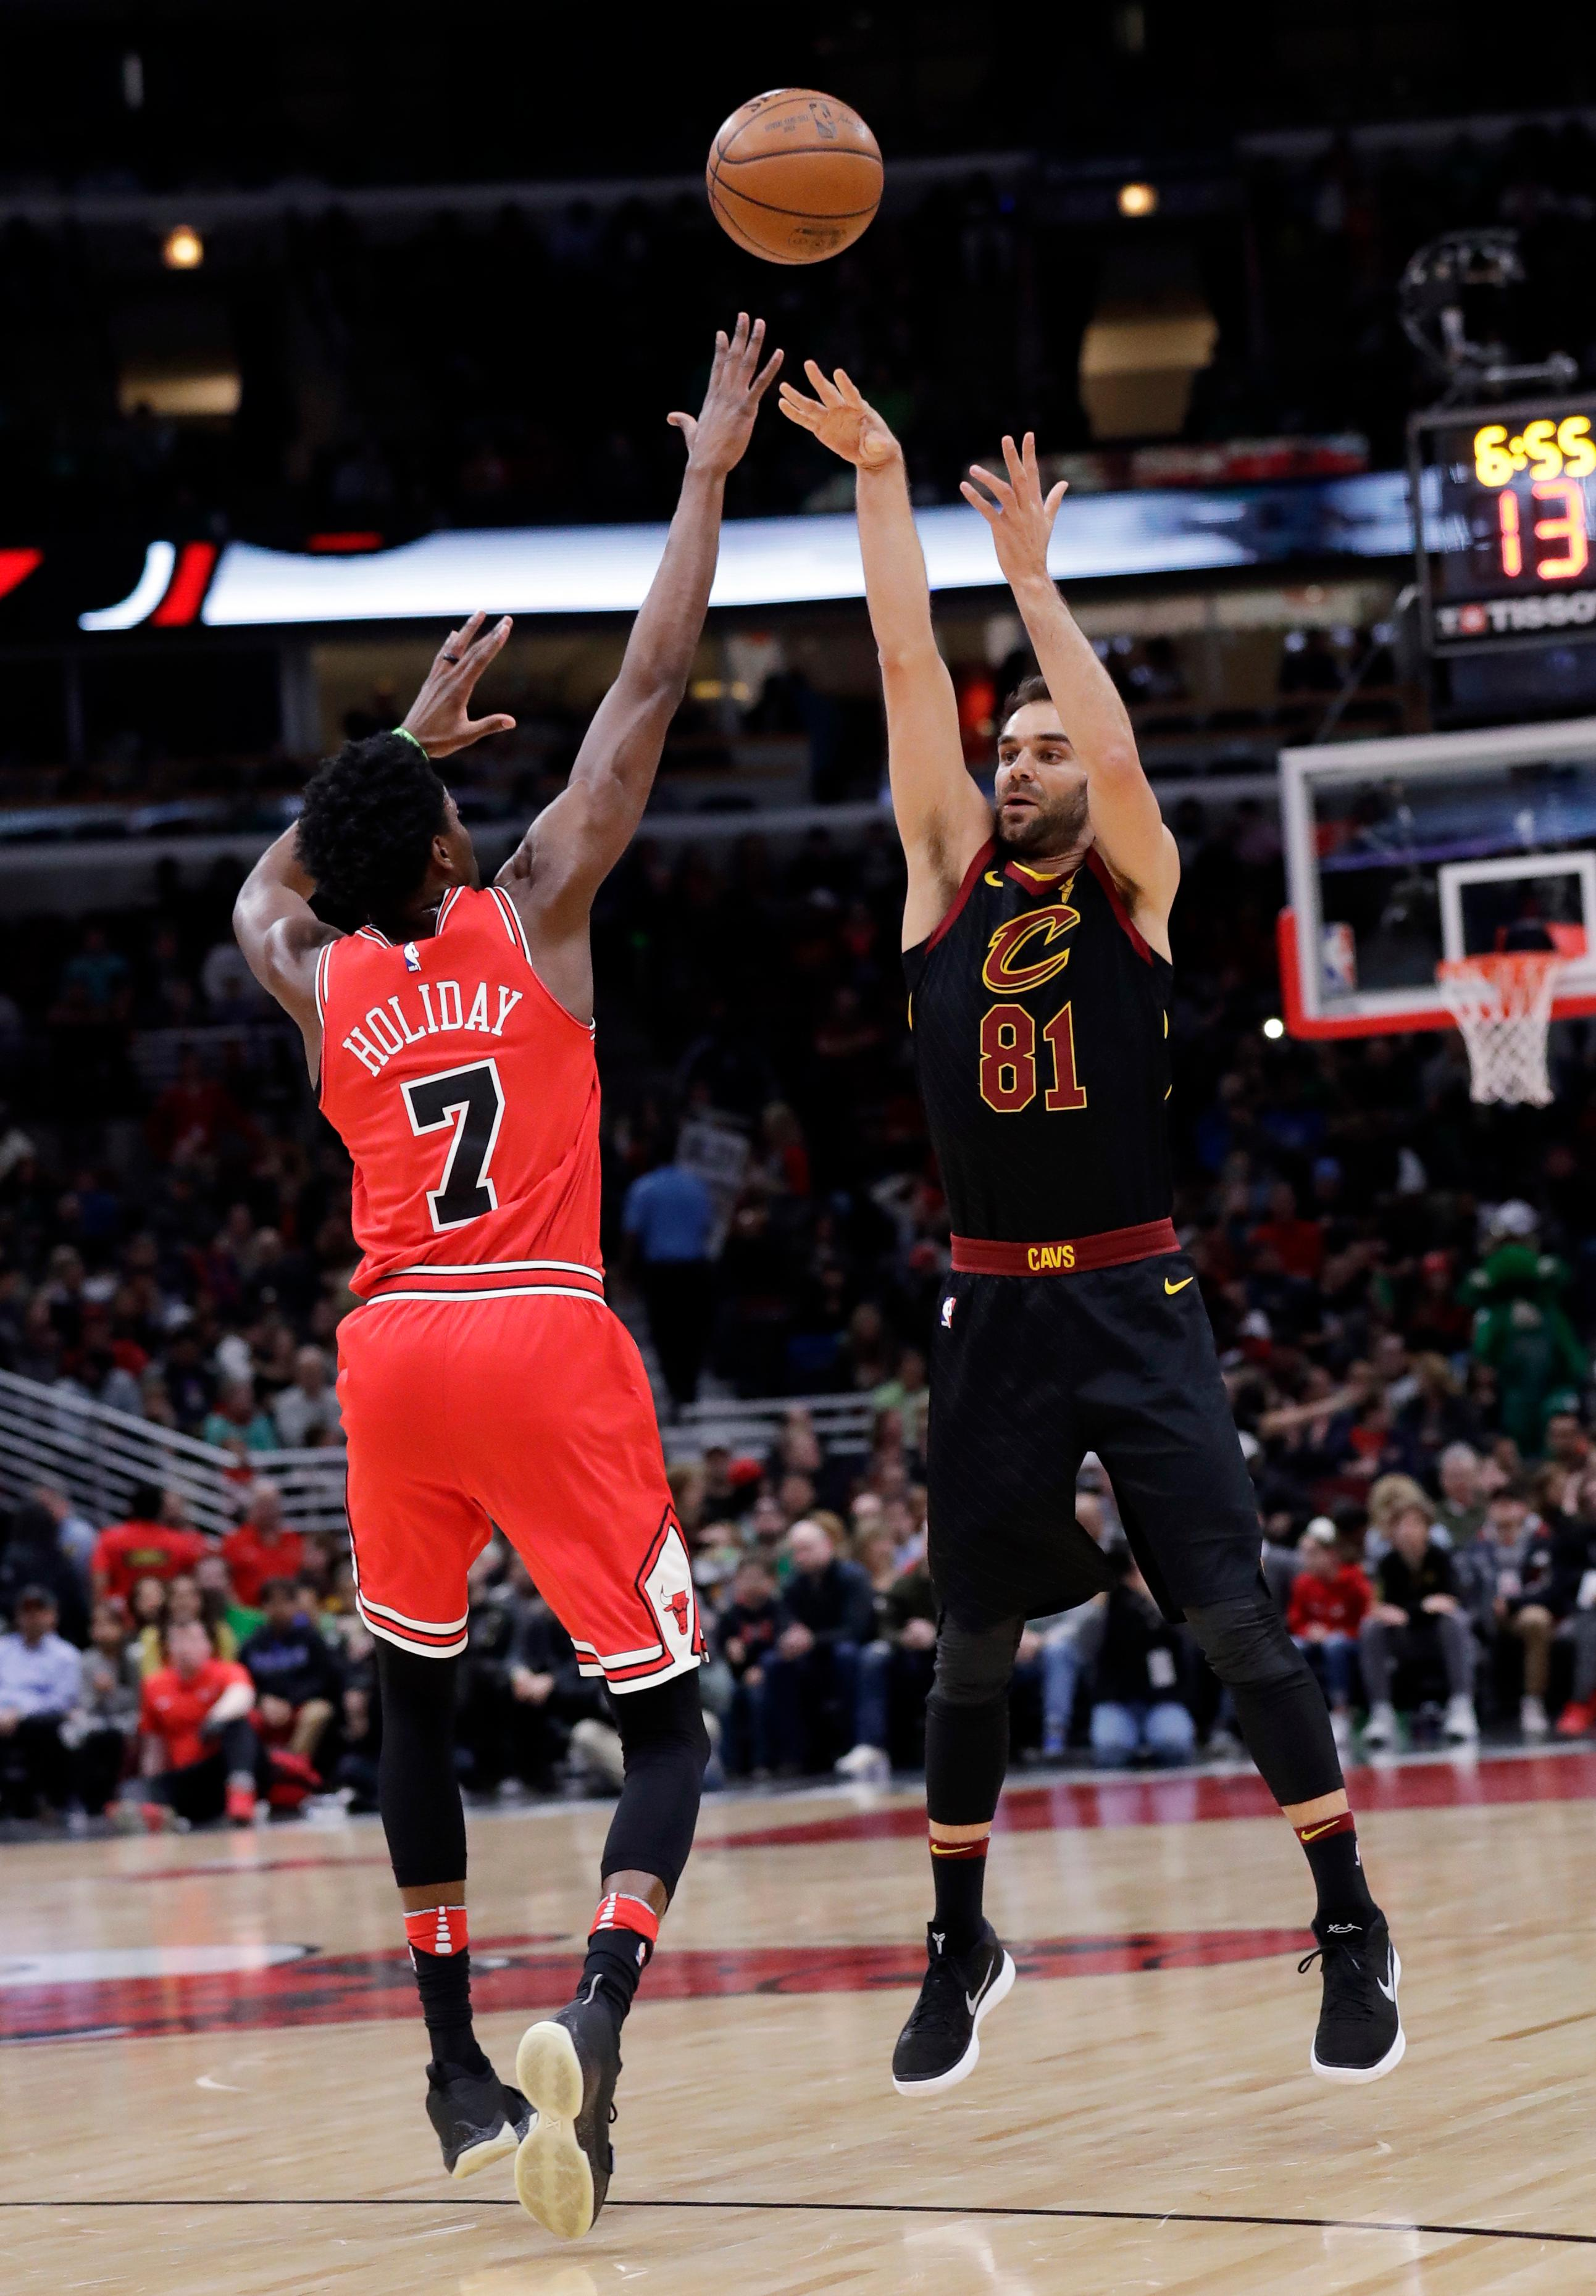 Cleveland Cavaliers guard Jose Calderon, right, shoots over Chicago Bulls guard Justin Holiday during the first half of an NBA basketball game Saturday, March 17, 2018, in Chicago. (AP Photo/Nam Y. Huh)